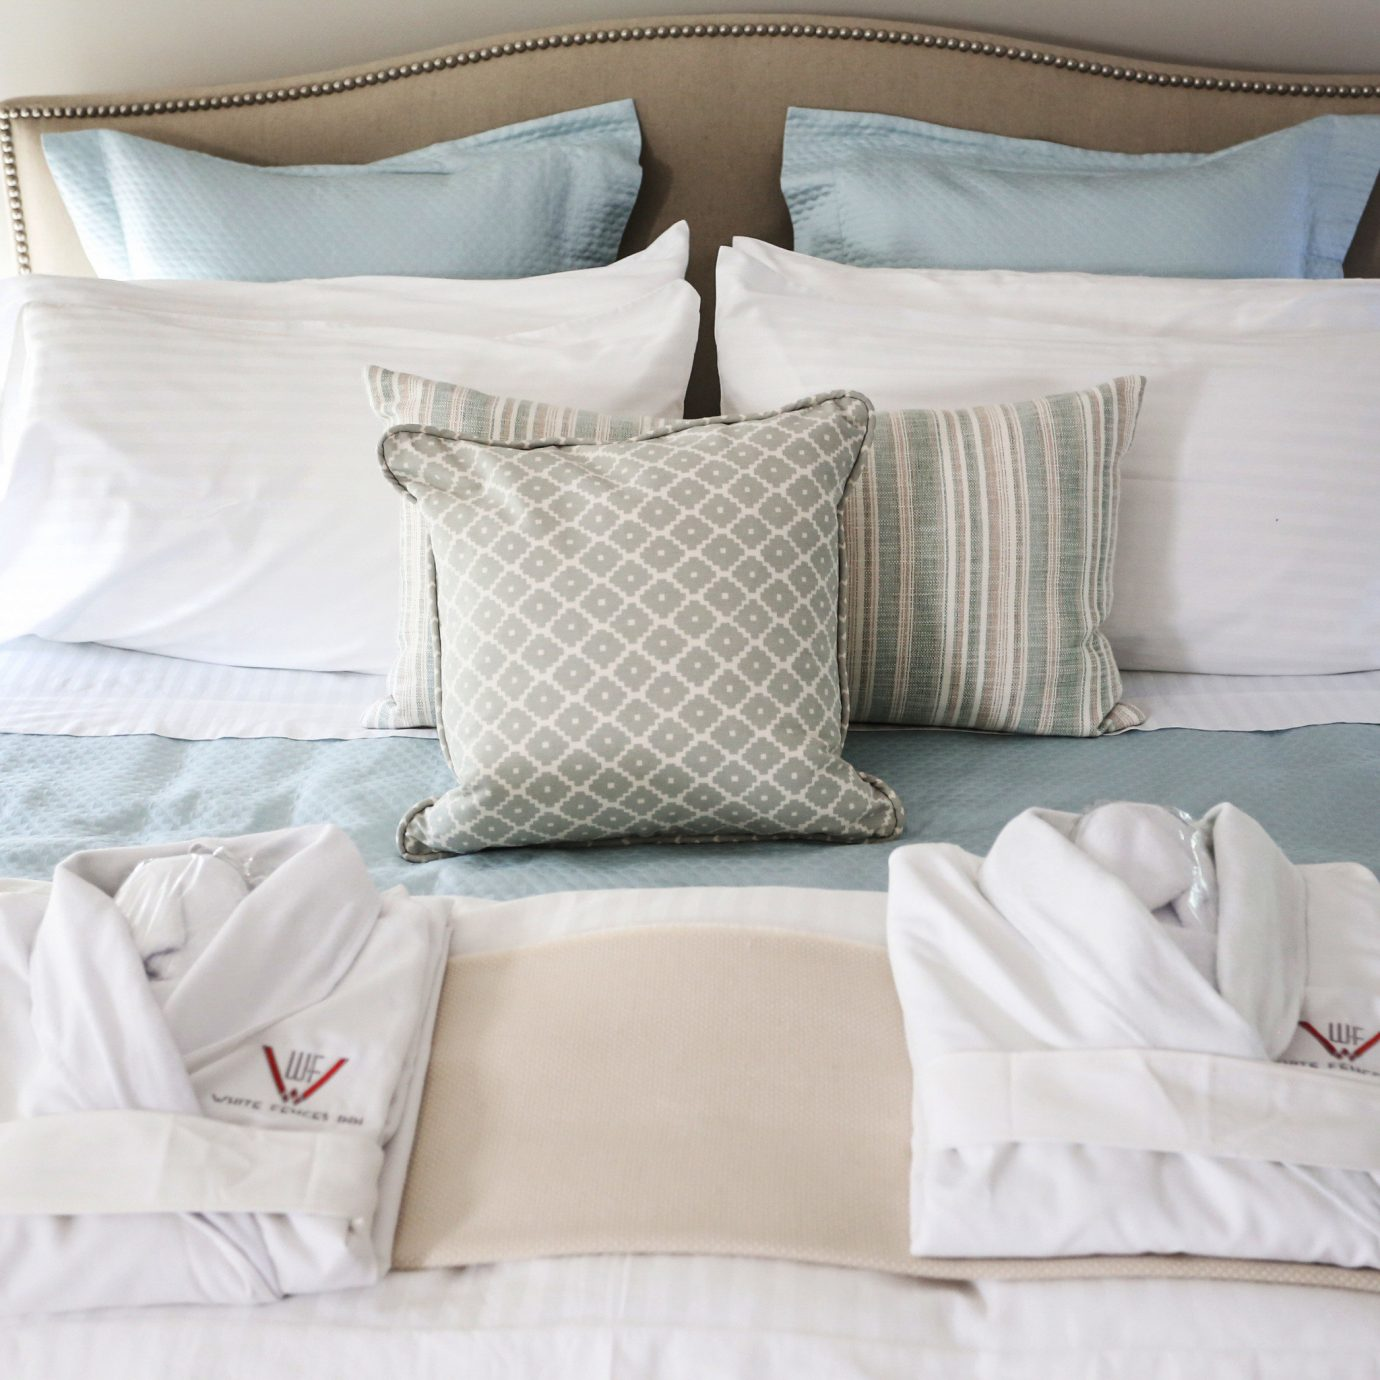 duvet cover pillow bed sheet textile product white material linens bed frame night